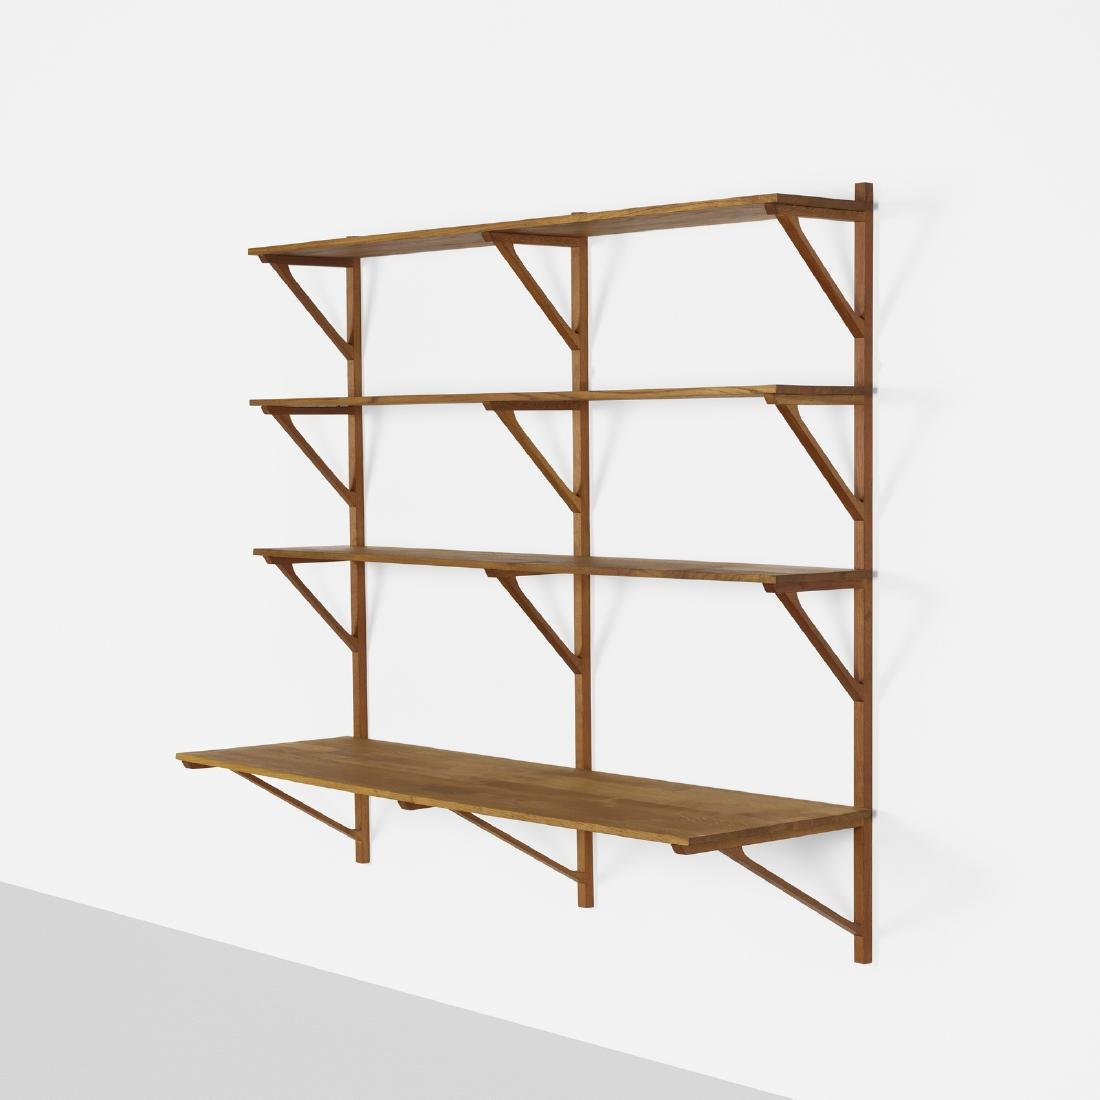 Borge Mogensen, wall shelf, model 20069